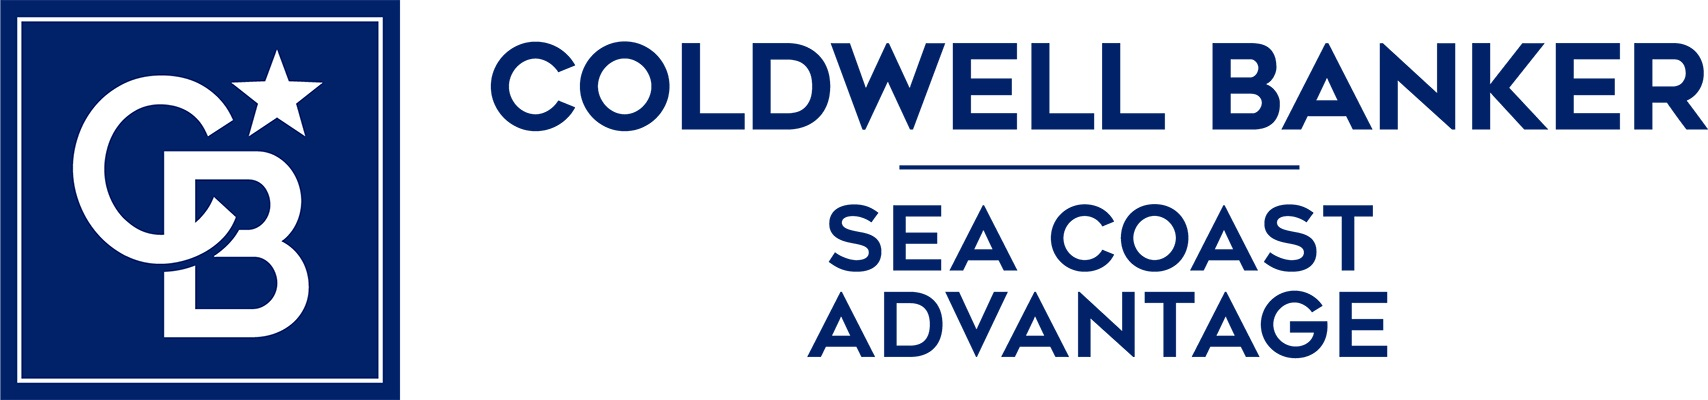 Irena Kohler - Coldwell Banker Sea Coast Advantage Realty Logo